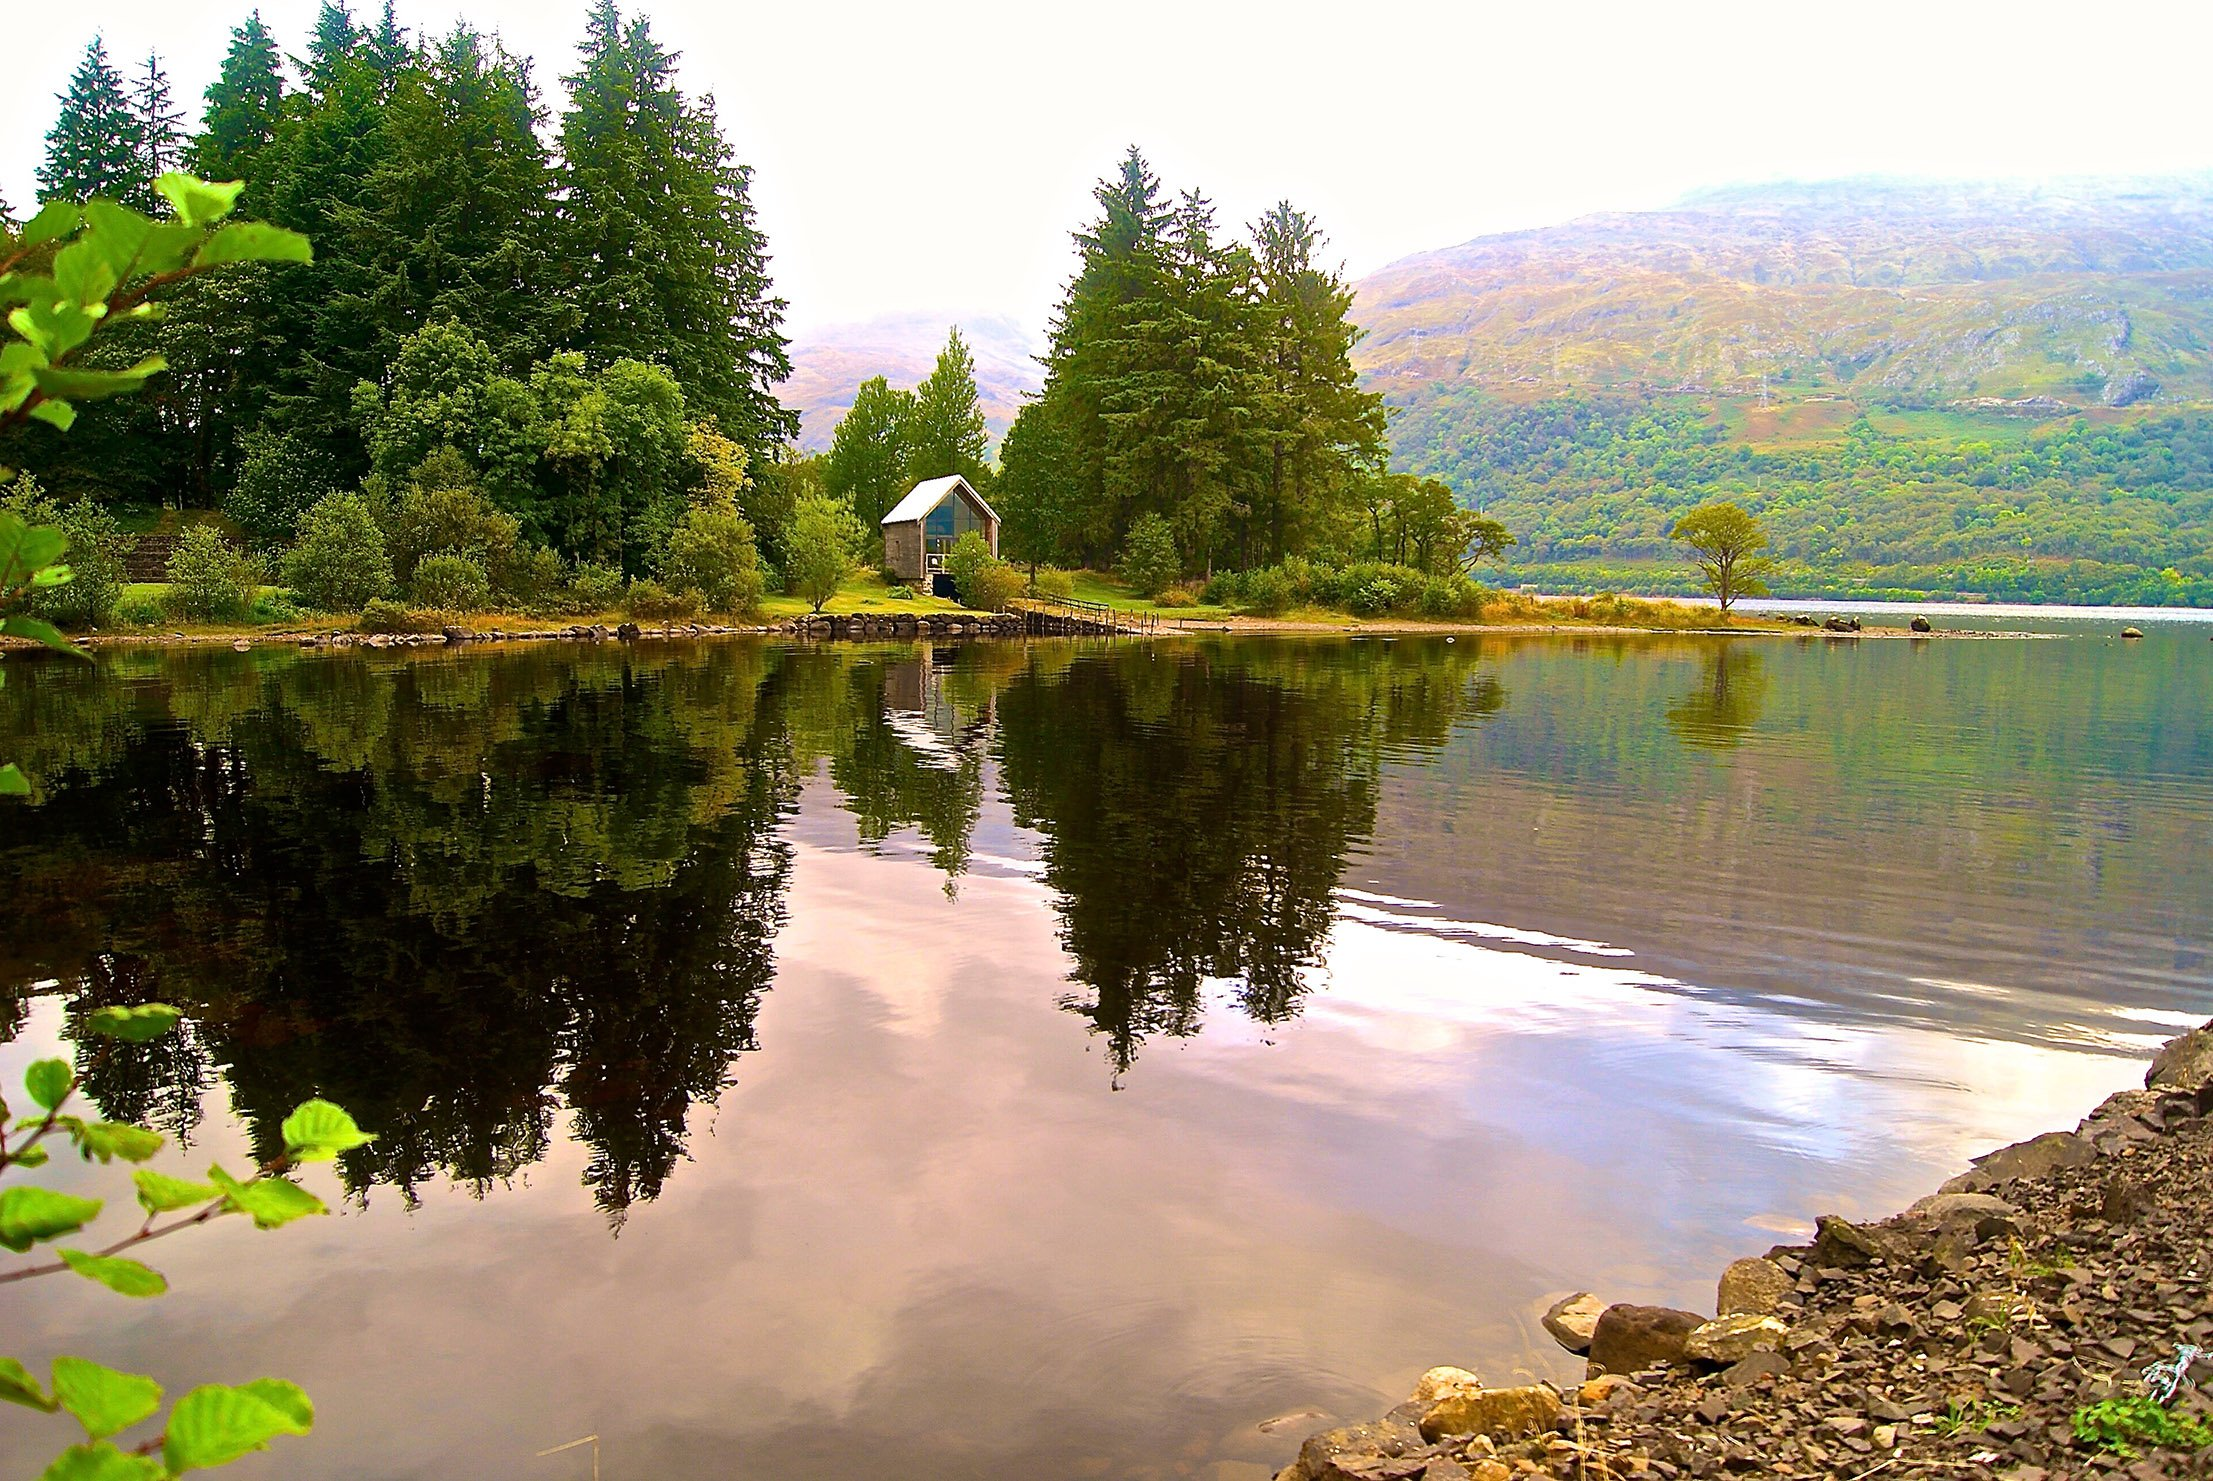 The Boatshed on Loch Awe